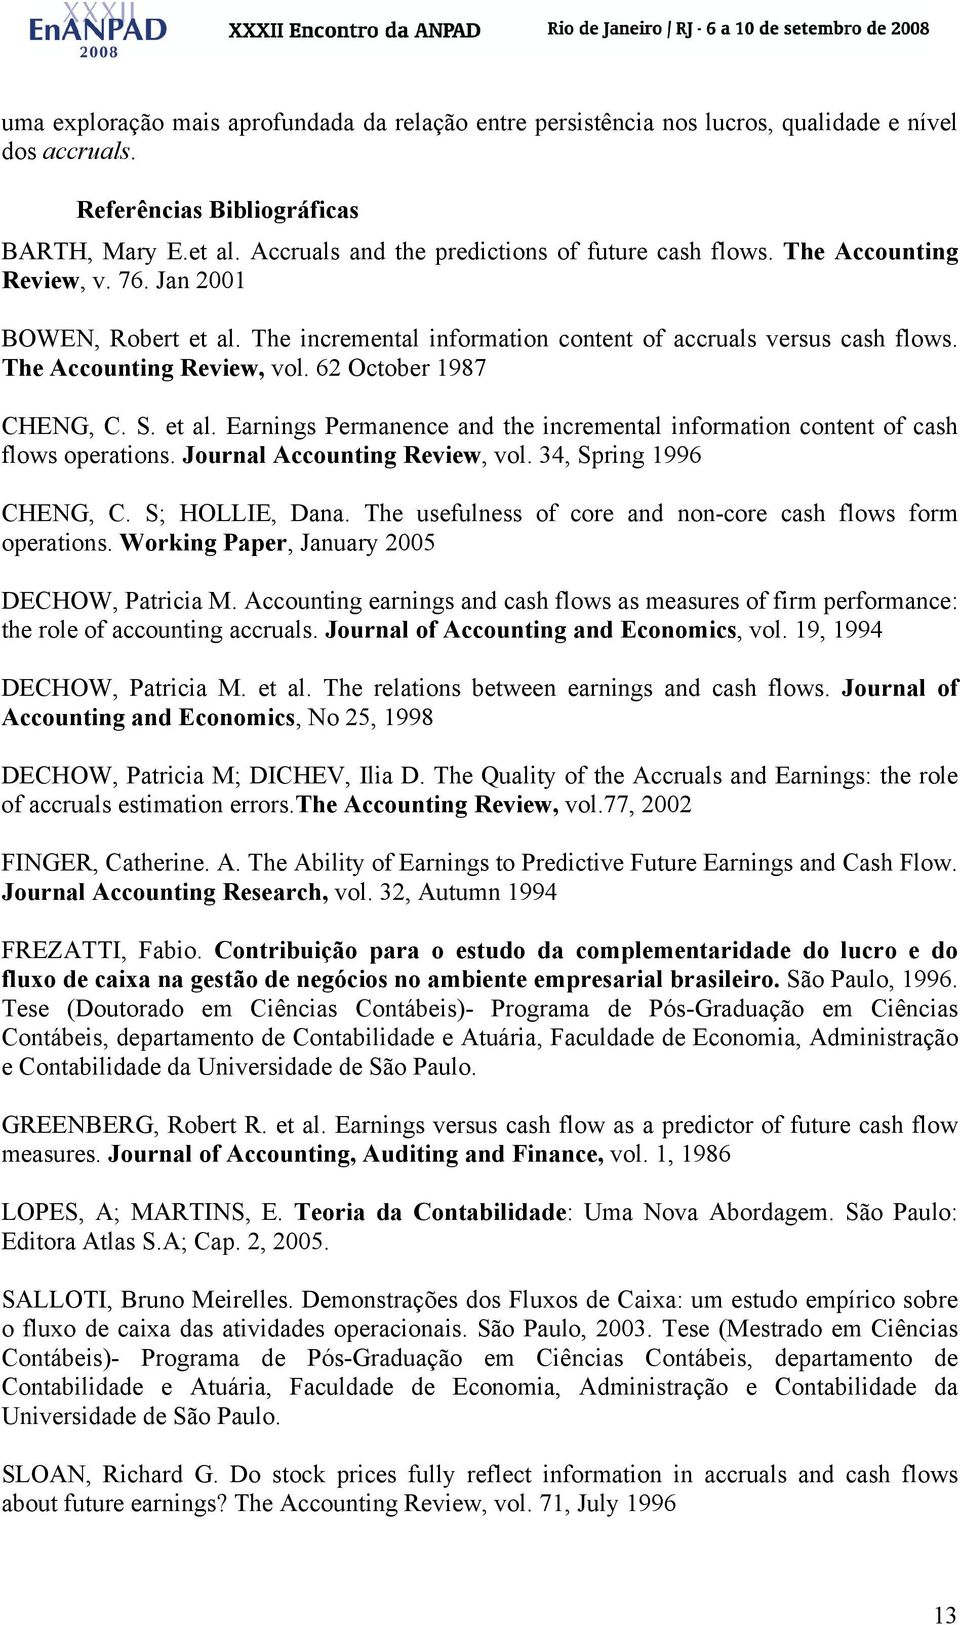 Journal Accouning Review, vol. 34, Spring 1996 CHENG, C. S; HOLLIE, Dana. The usefulness of core and non-core cash flows form operaions. Working Paper, January 2005 DECHOW, Paricia M.